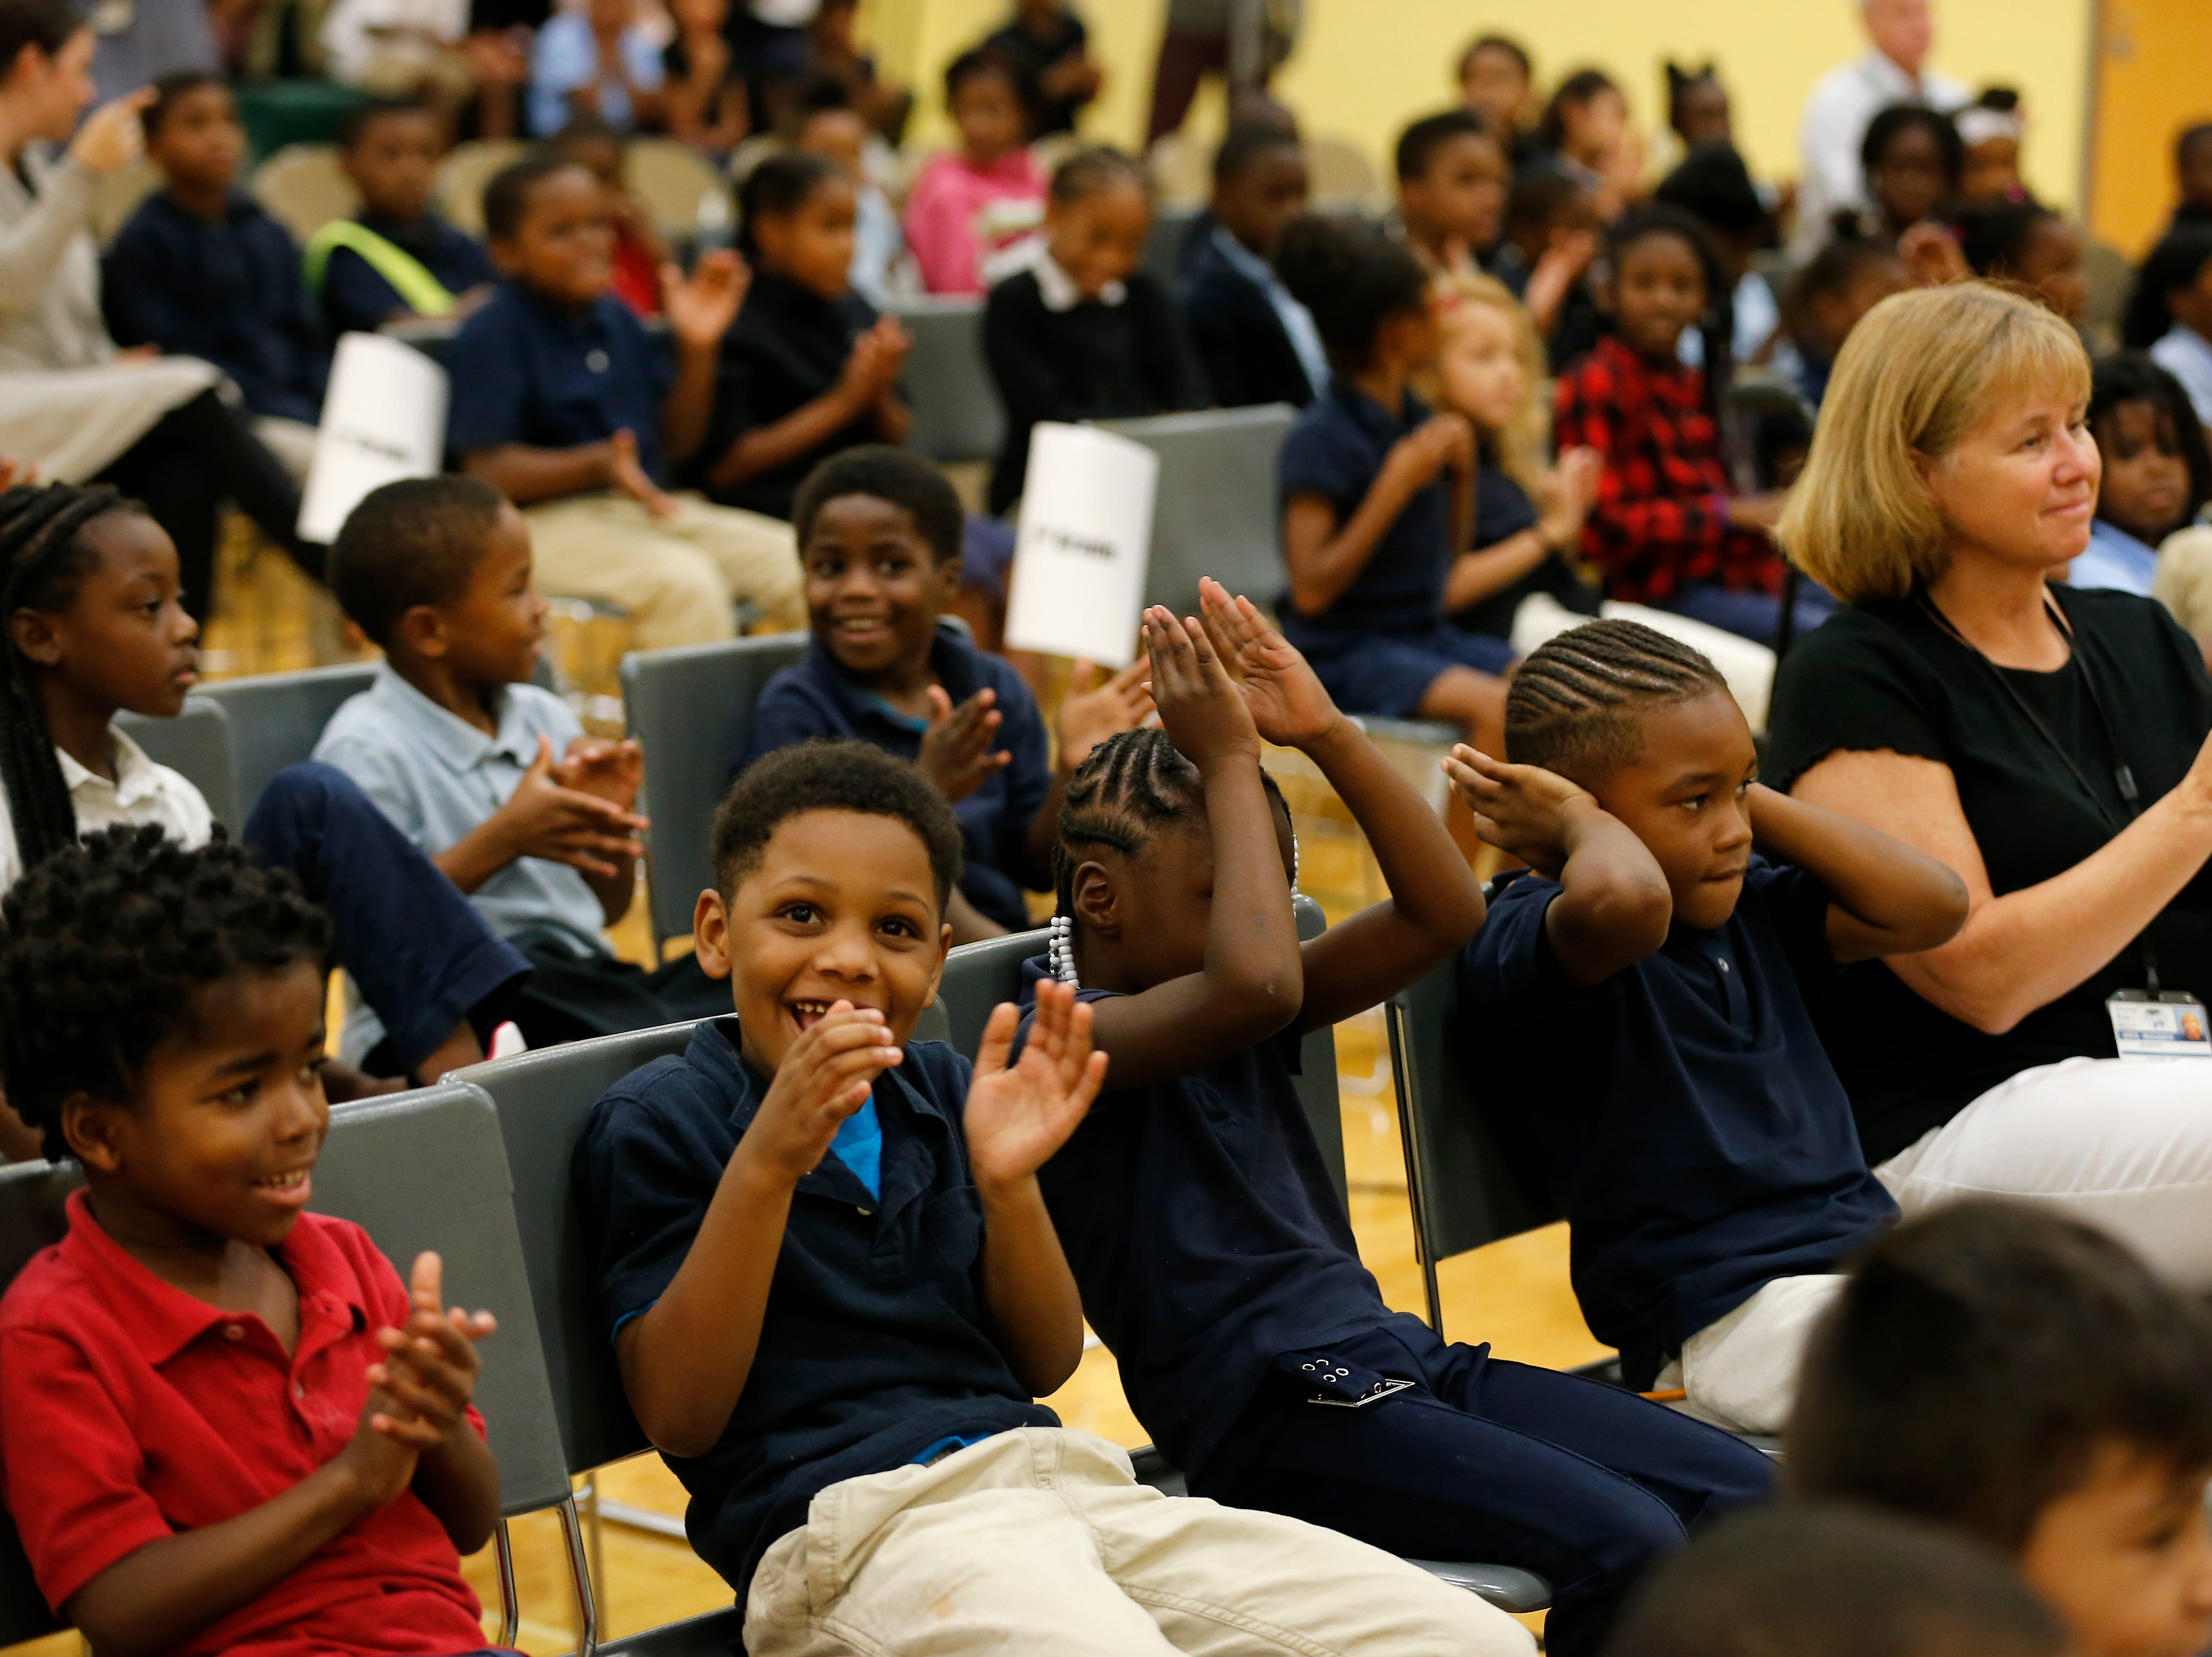 """Students cheer at the beginning of an assembly at Winton Hills Academy in Cincinnati on Tuesday, Sept. 18, 2018. Five students of the academy were named winners, becoming published authors, of a national contest for a book about anti-bullying. The students' book, """"Misunderstanding Micah"""" was selected as the winner of the 2018 National Student Book Scholar Competition by The National Youth Foundation."""